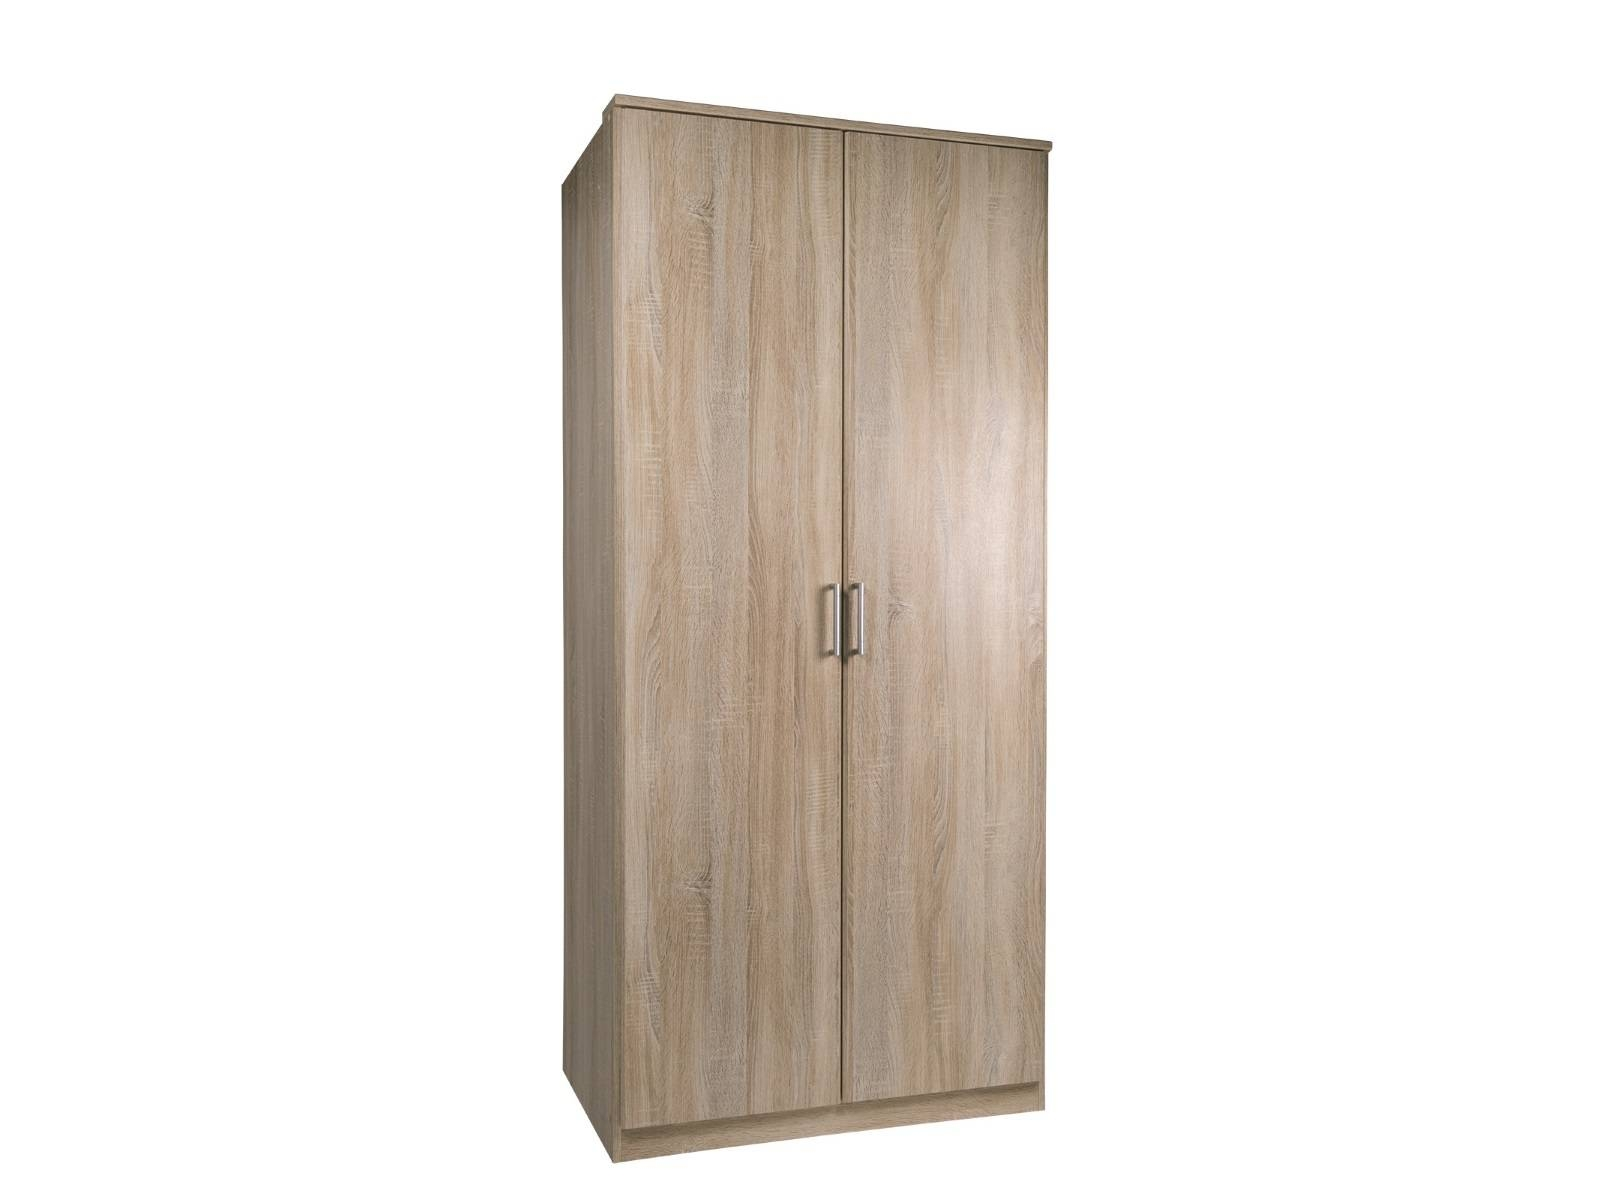 Cheap Wardrobes | Bedroom Furniture For Sale | Double Wardrobe with regard to Cheap Wardrobes (Image 9 of 15)